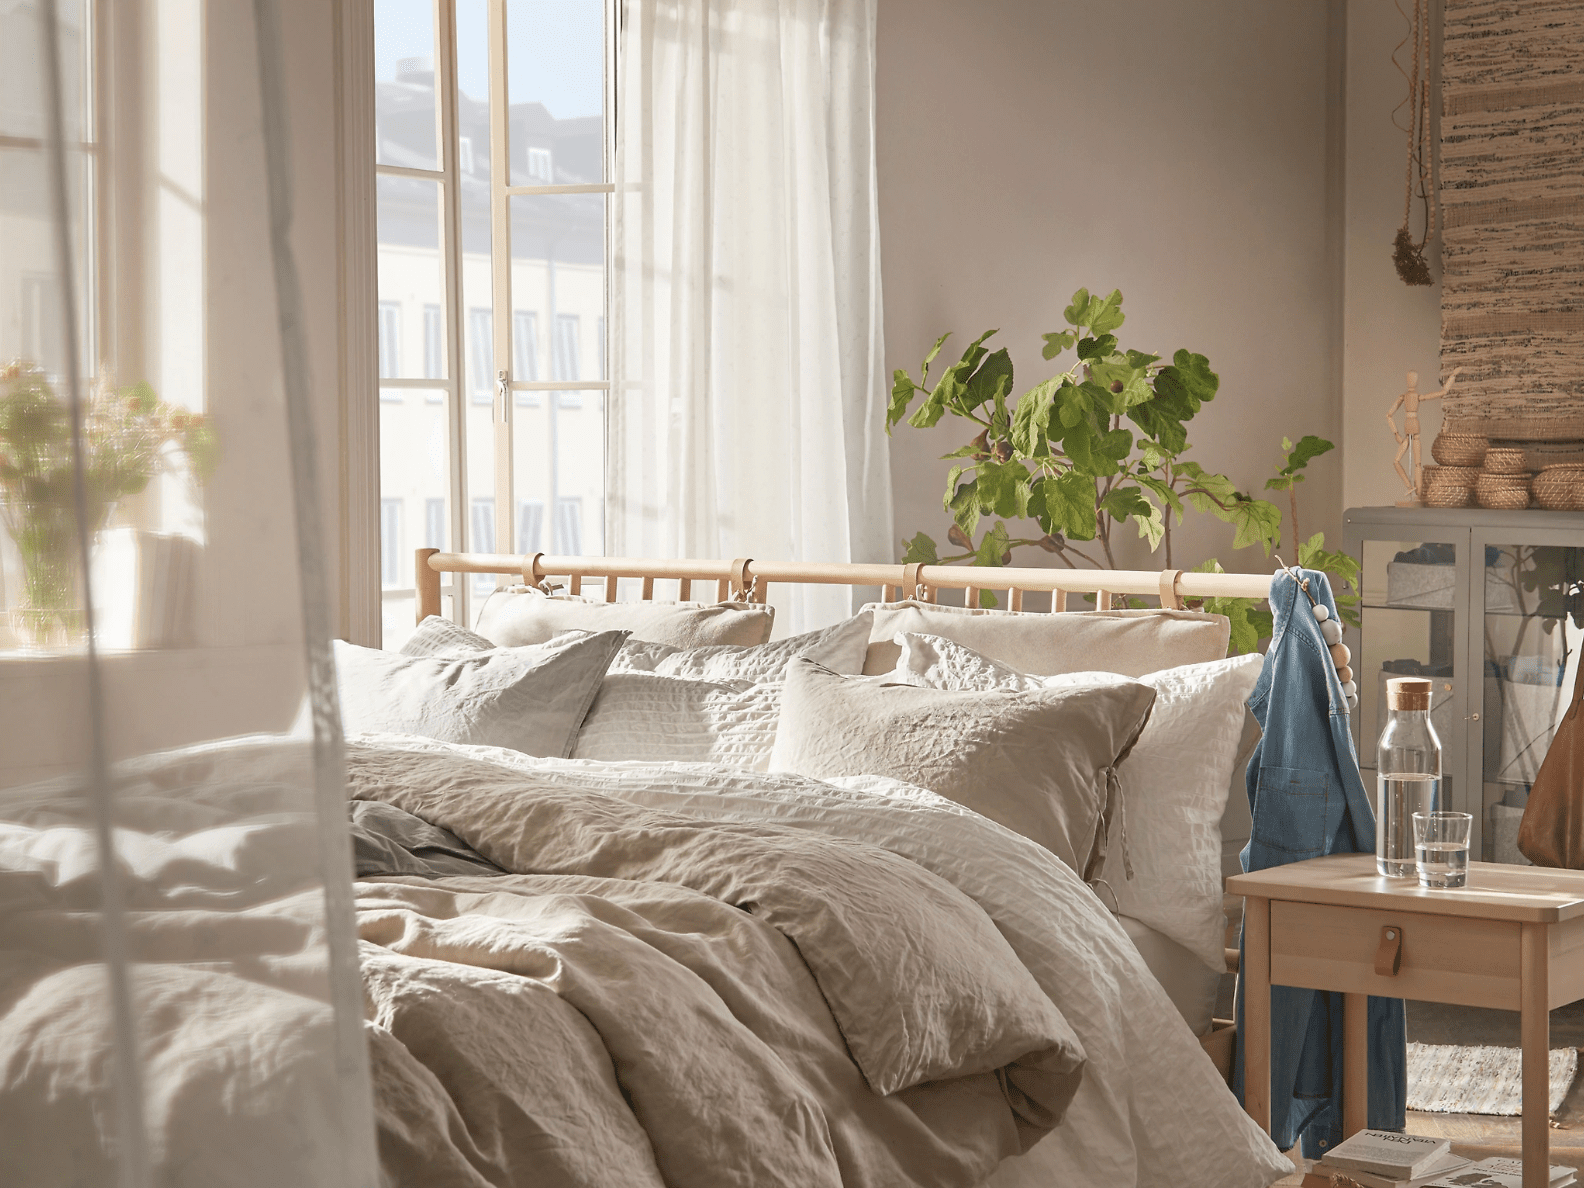 How To Make A Bedroom Look Expensive With 200 At Ikea